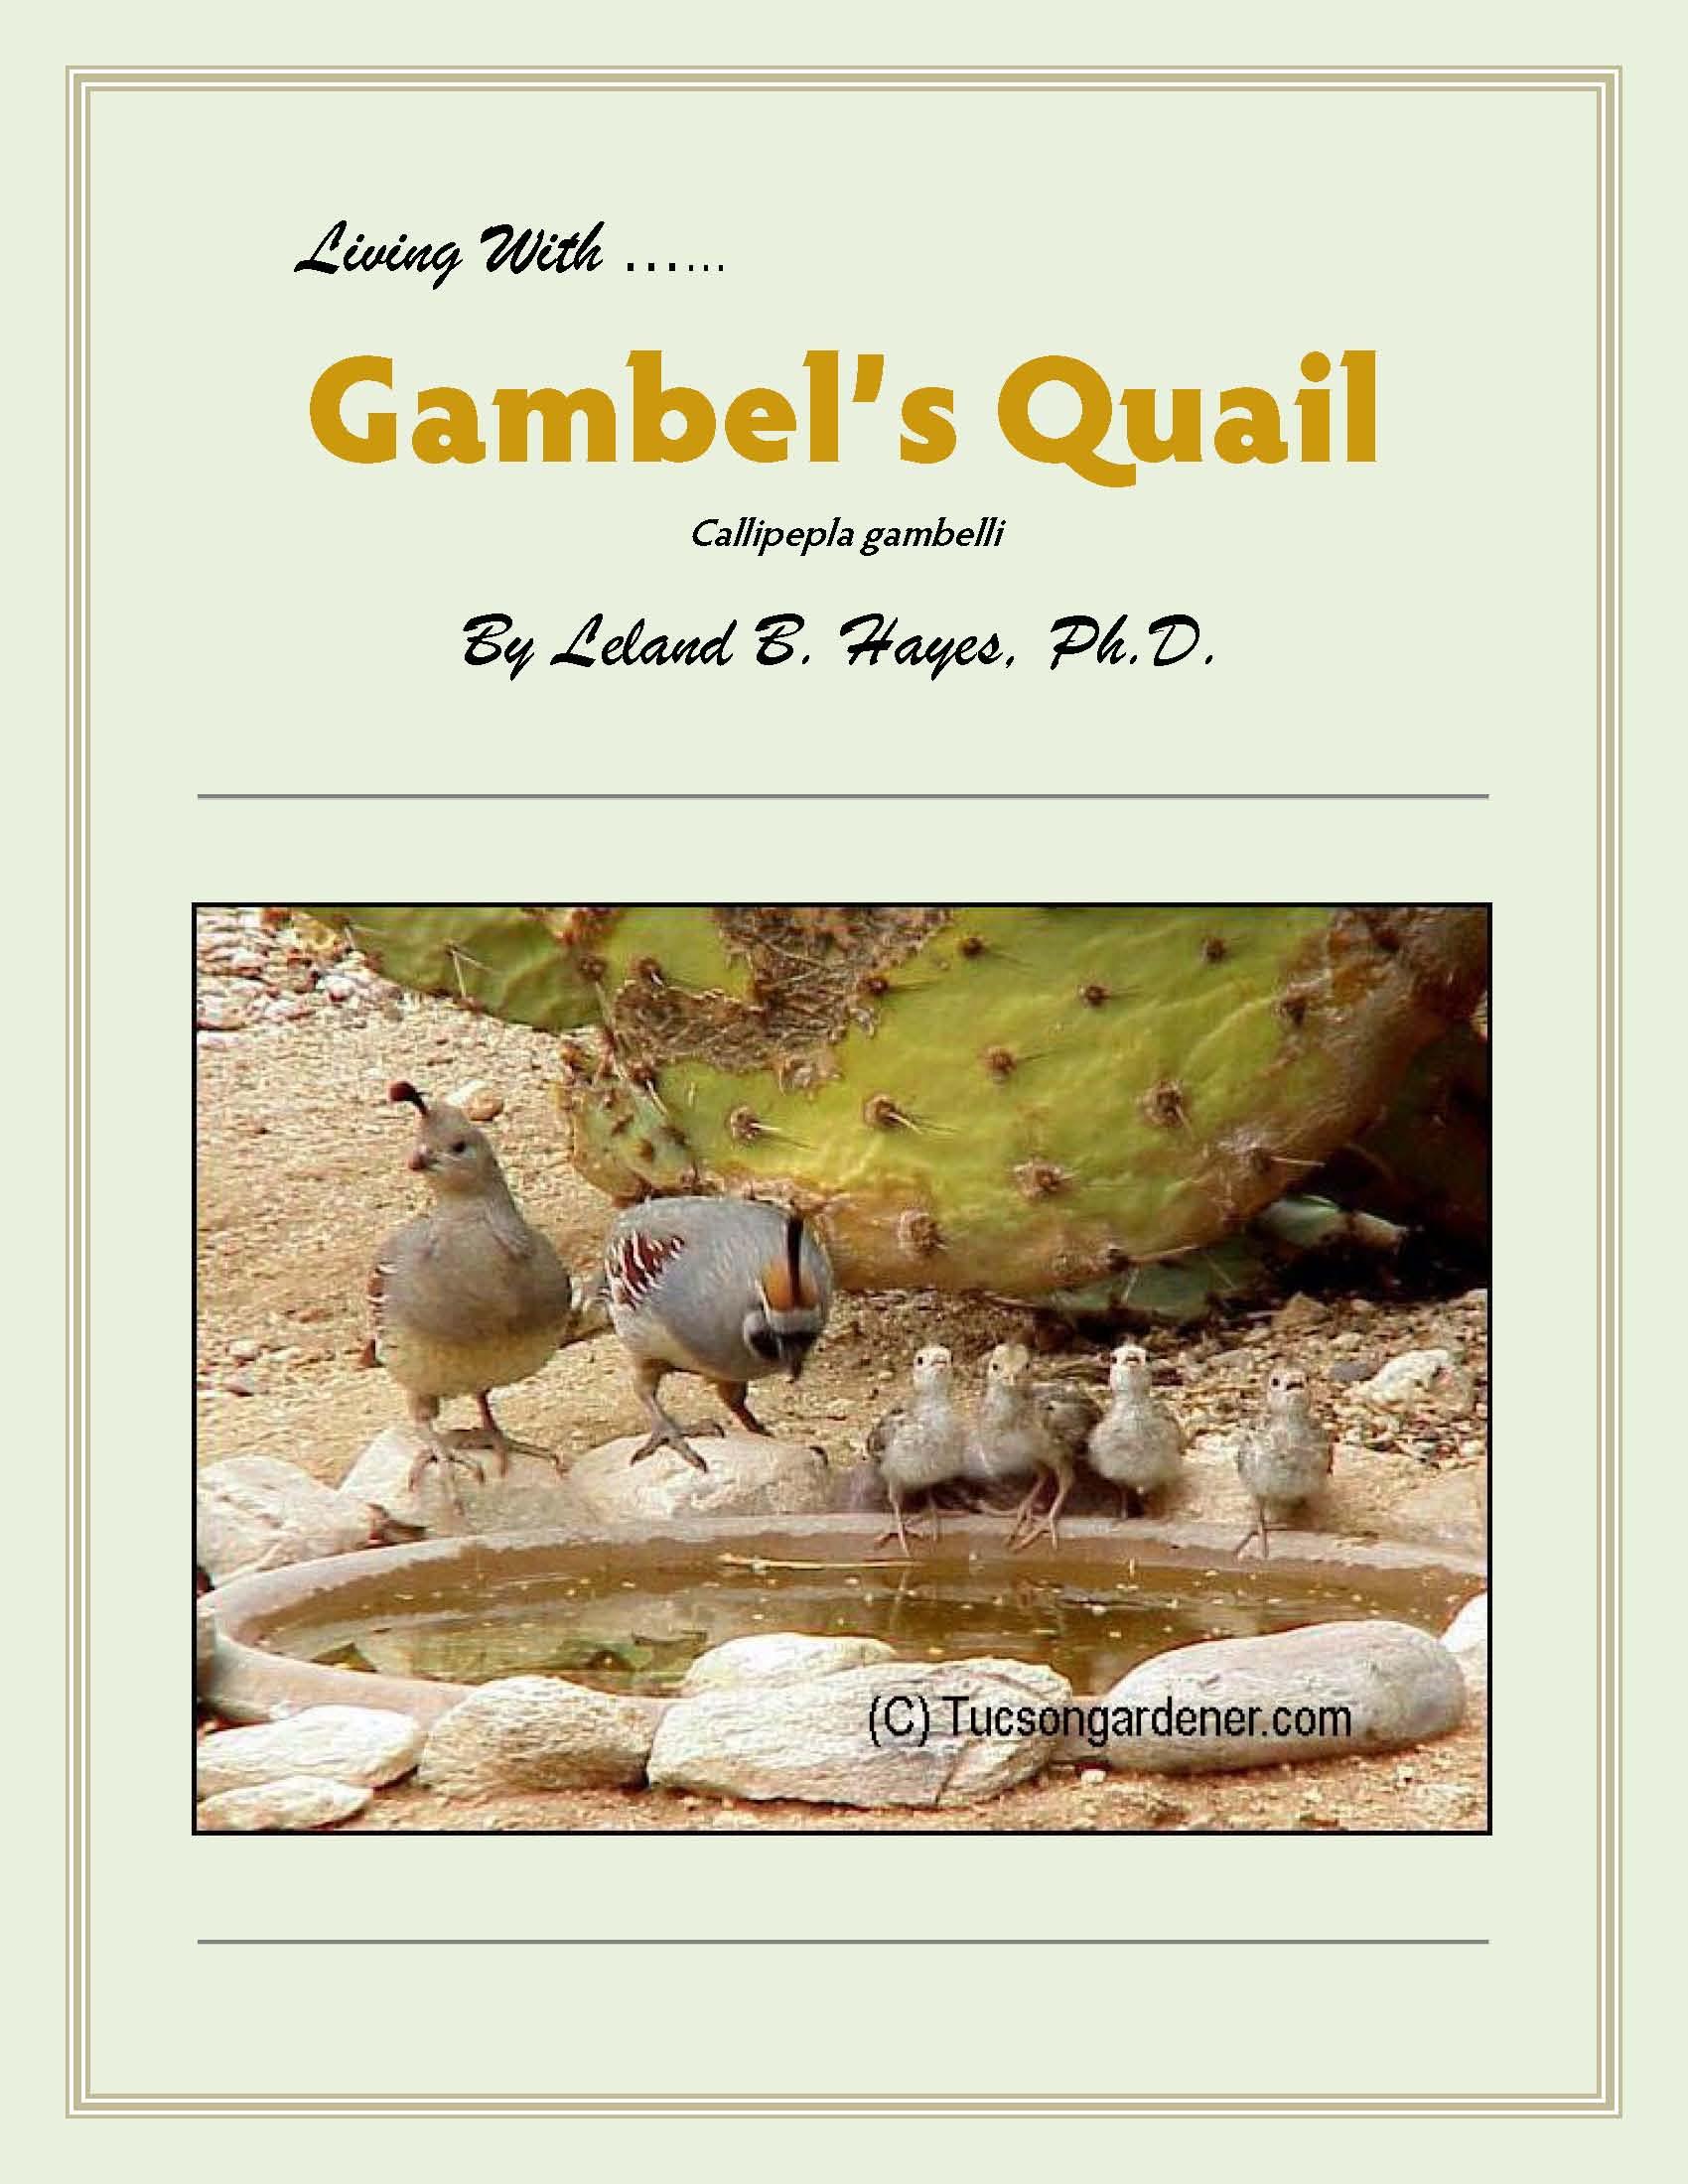 Living With Gambel's Quail, a CD by Leland Hayes